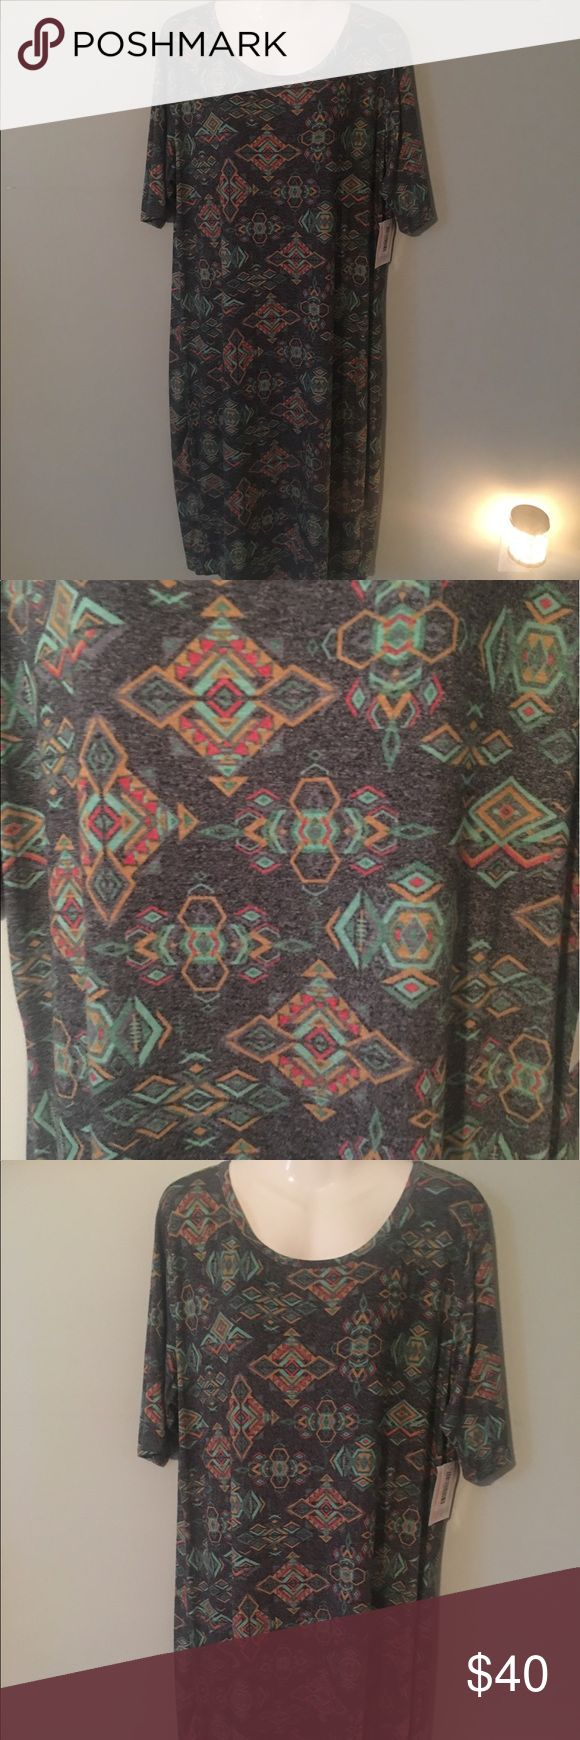 #LuLaRoe #Julia #Dress #Aztec Print 2XL #Comfy NWT #LuLaRoe #Julia #Dress #Aztec Print 2XL #Comfy NWT LuLaRoe Dresses